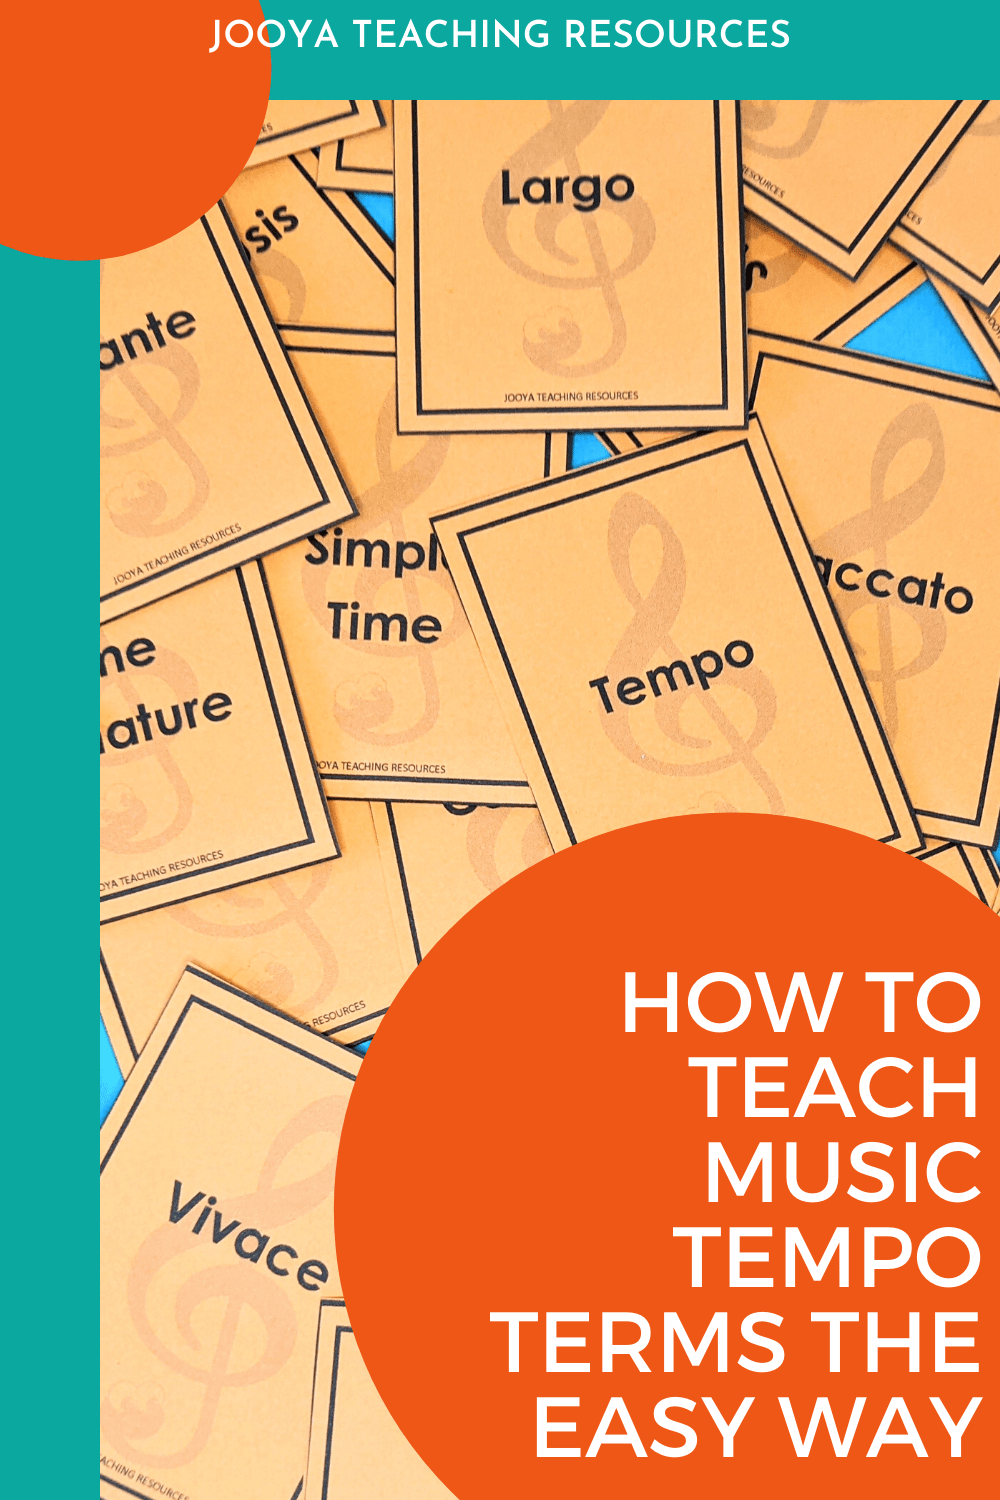 music-terms-for-tempo-definition-card-games-pin-2021